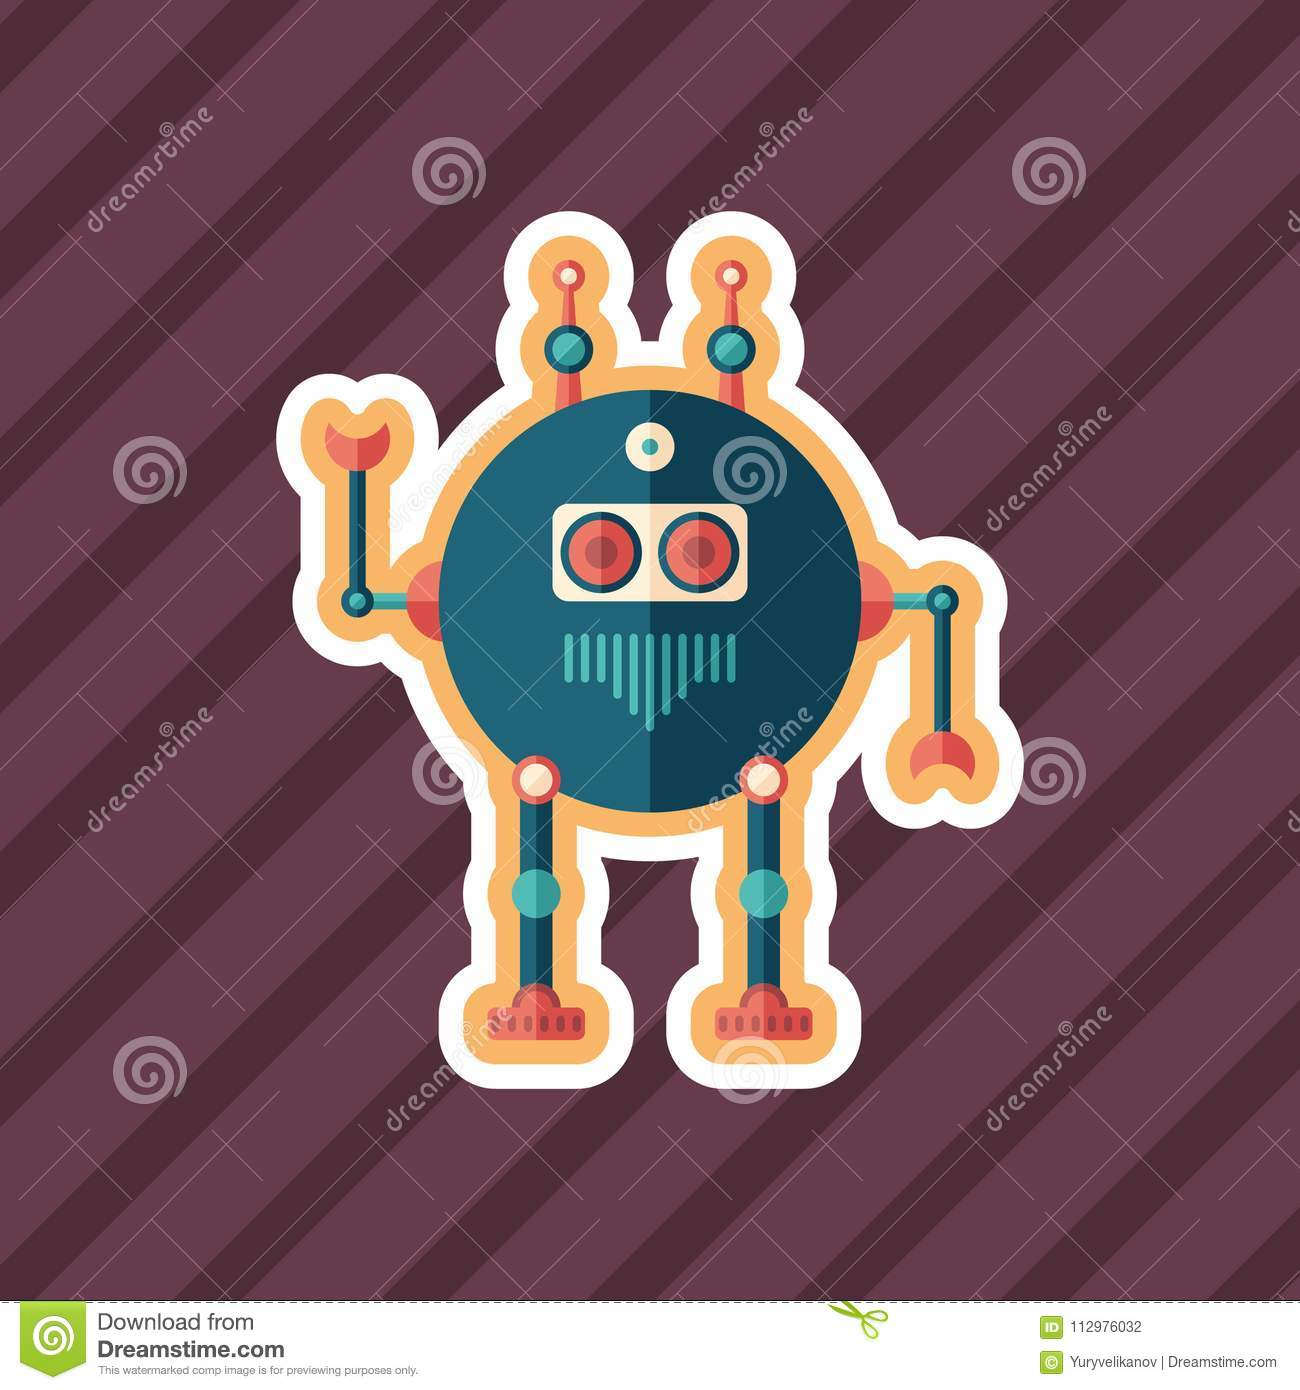 Robot scout sticker flat icon with color background.